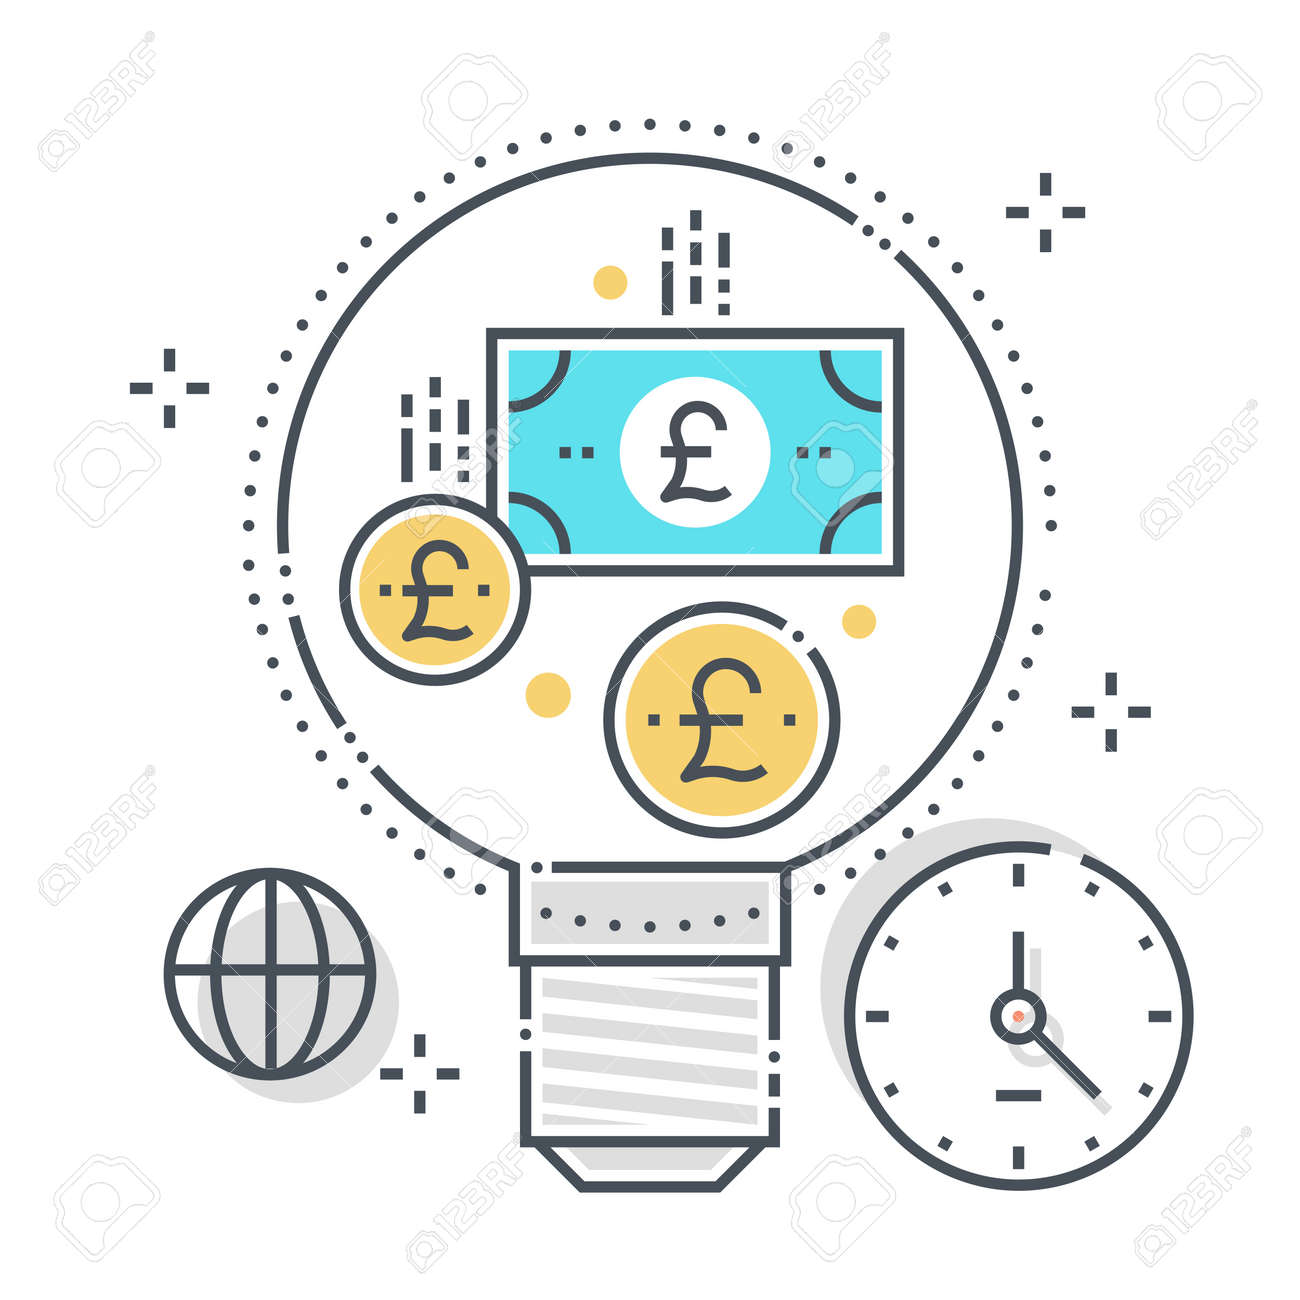 Currency exchange related color line vector icon, illustration. The icon is about coin, conversion, currency, dollar, finance, money, scale. The composition is infinitely scalable. - 163695977